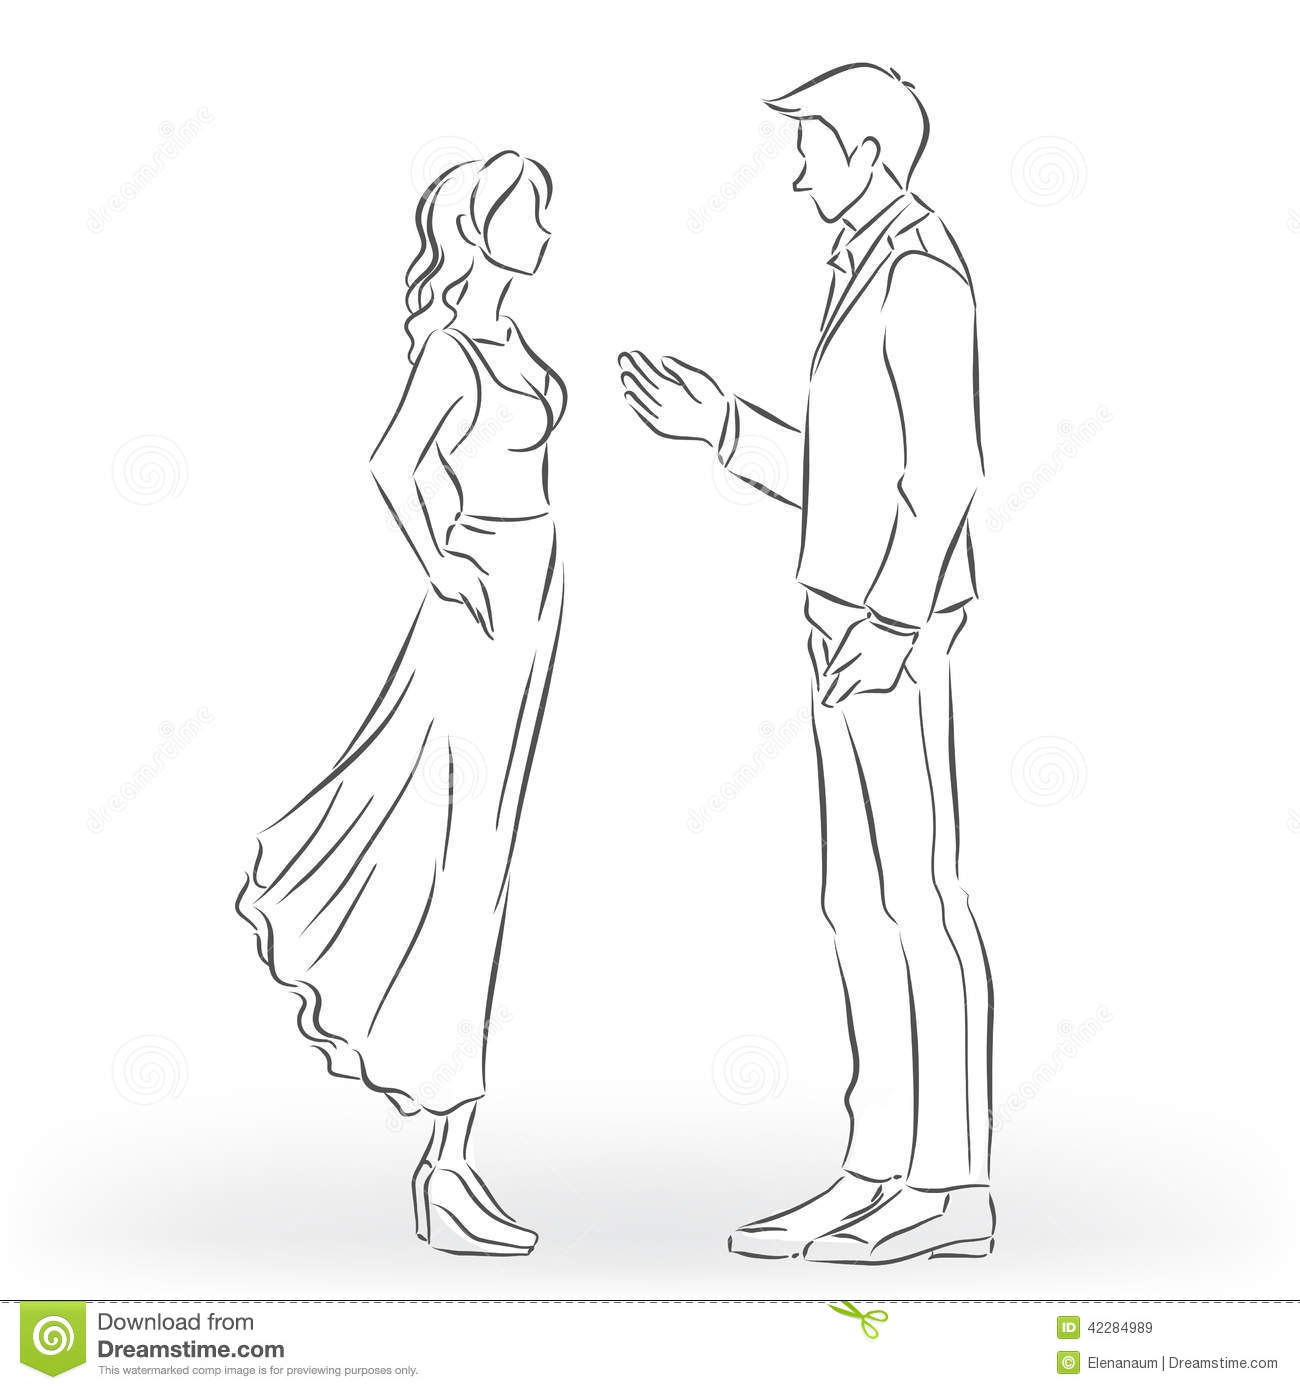 Man In The Suit And Woman In The Dress Are Talking Stock